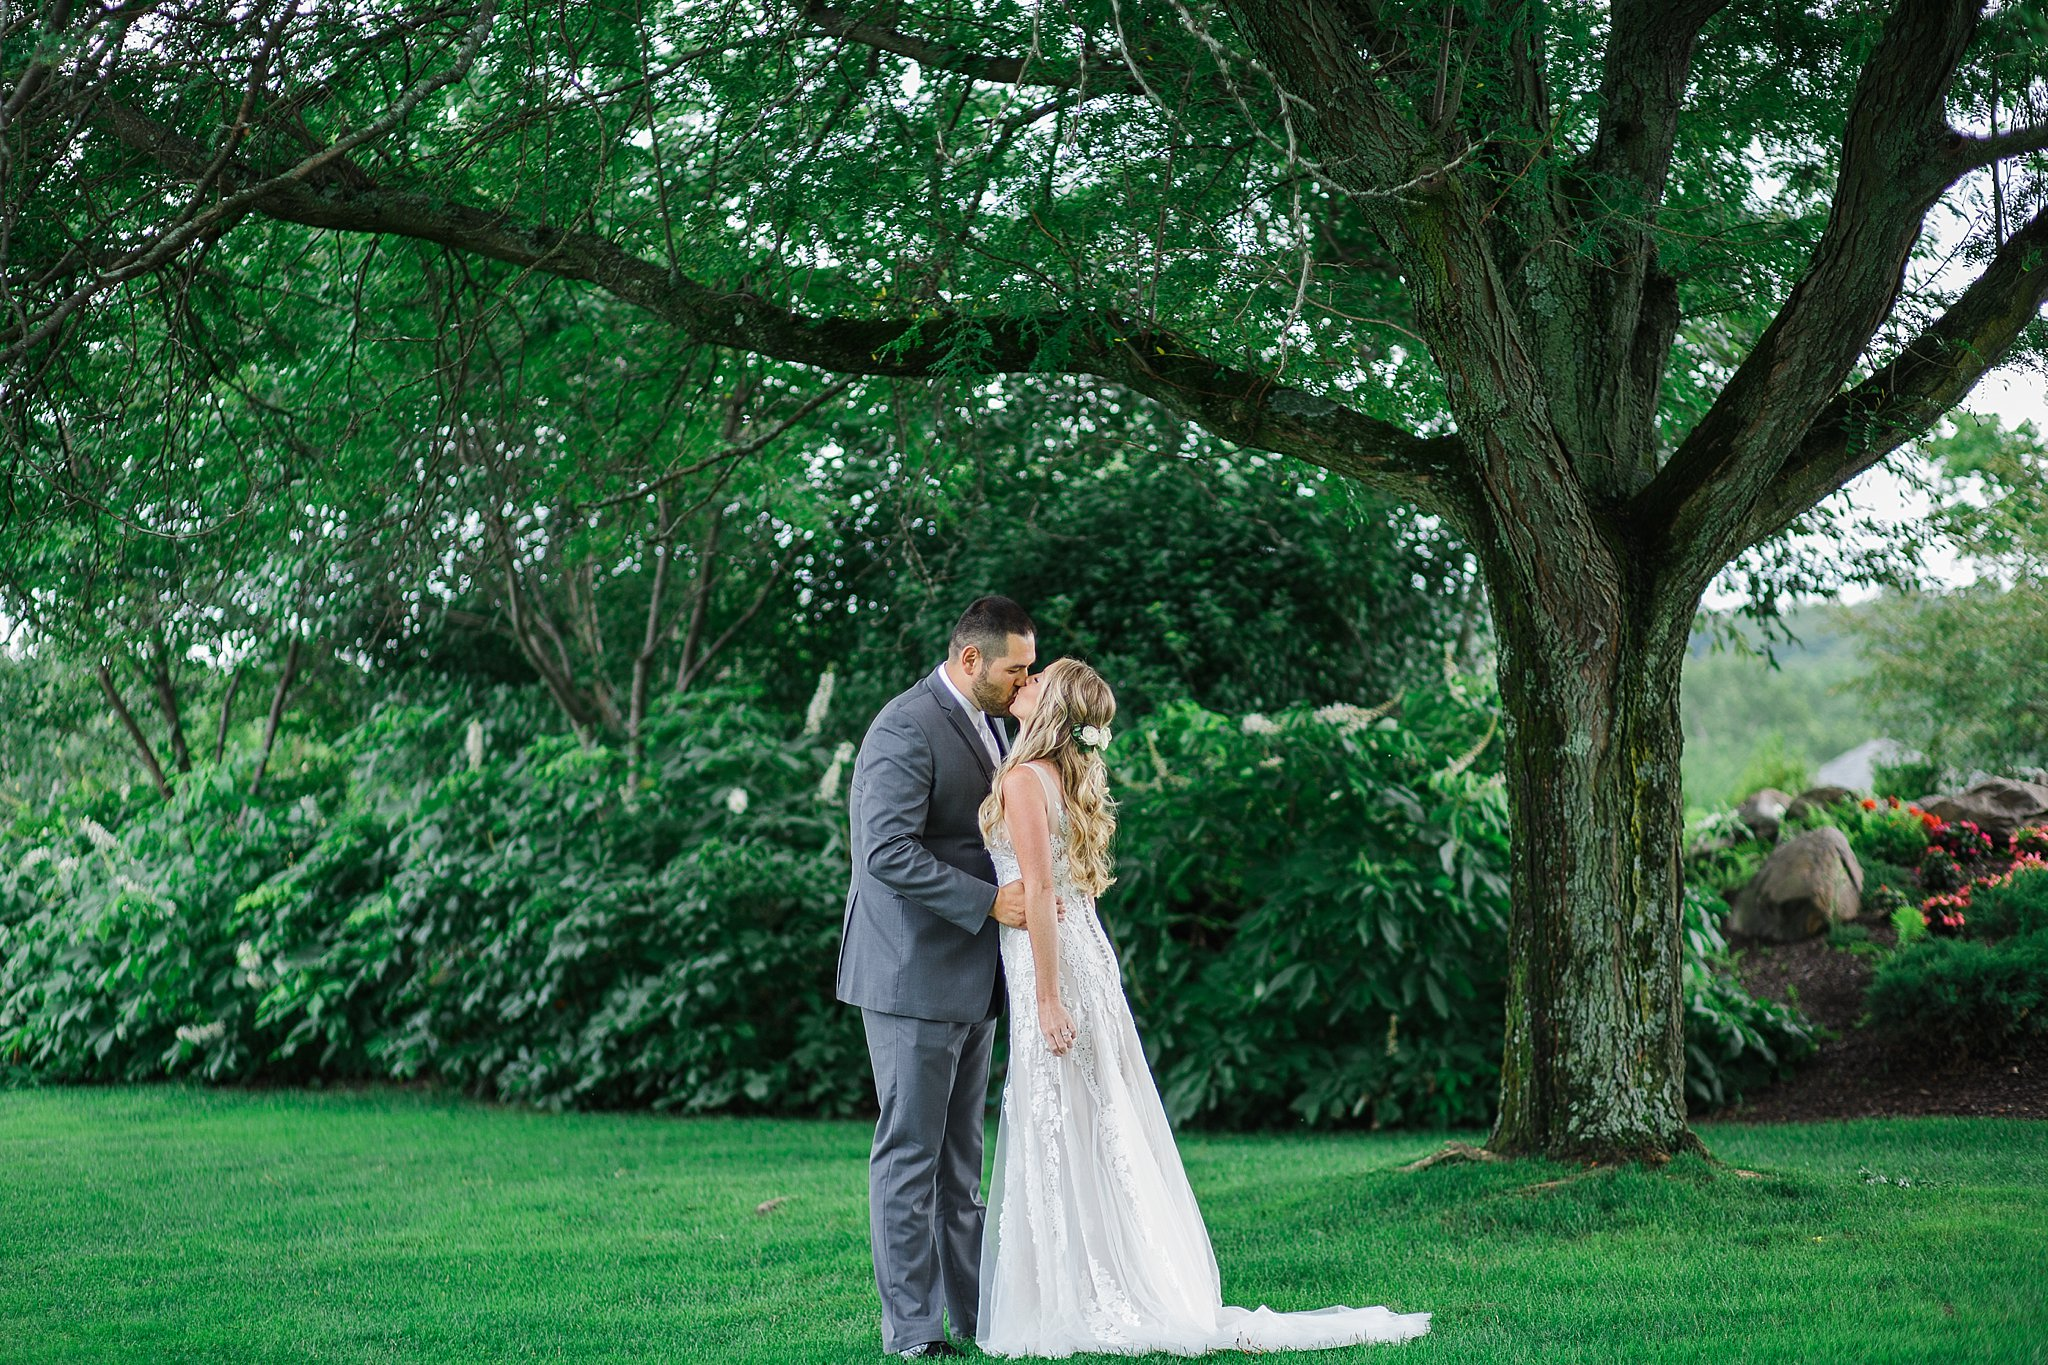 West Hills Country Club Wedding July Wedding Hudson Valley Wedding Hudson Valley Wedding Photographer Sweet Alice Photography15.jpg